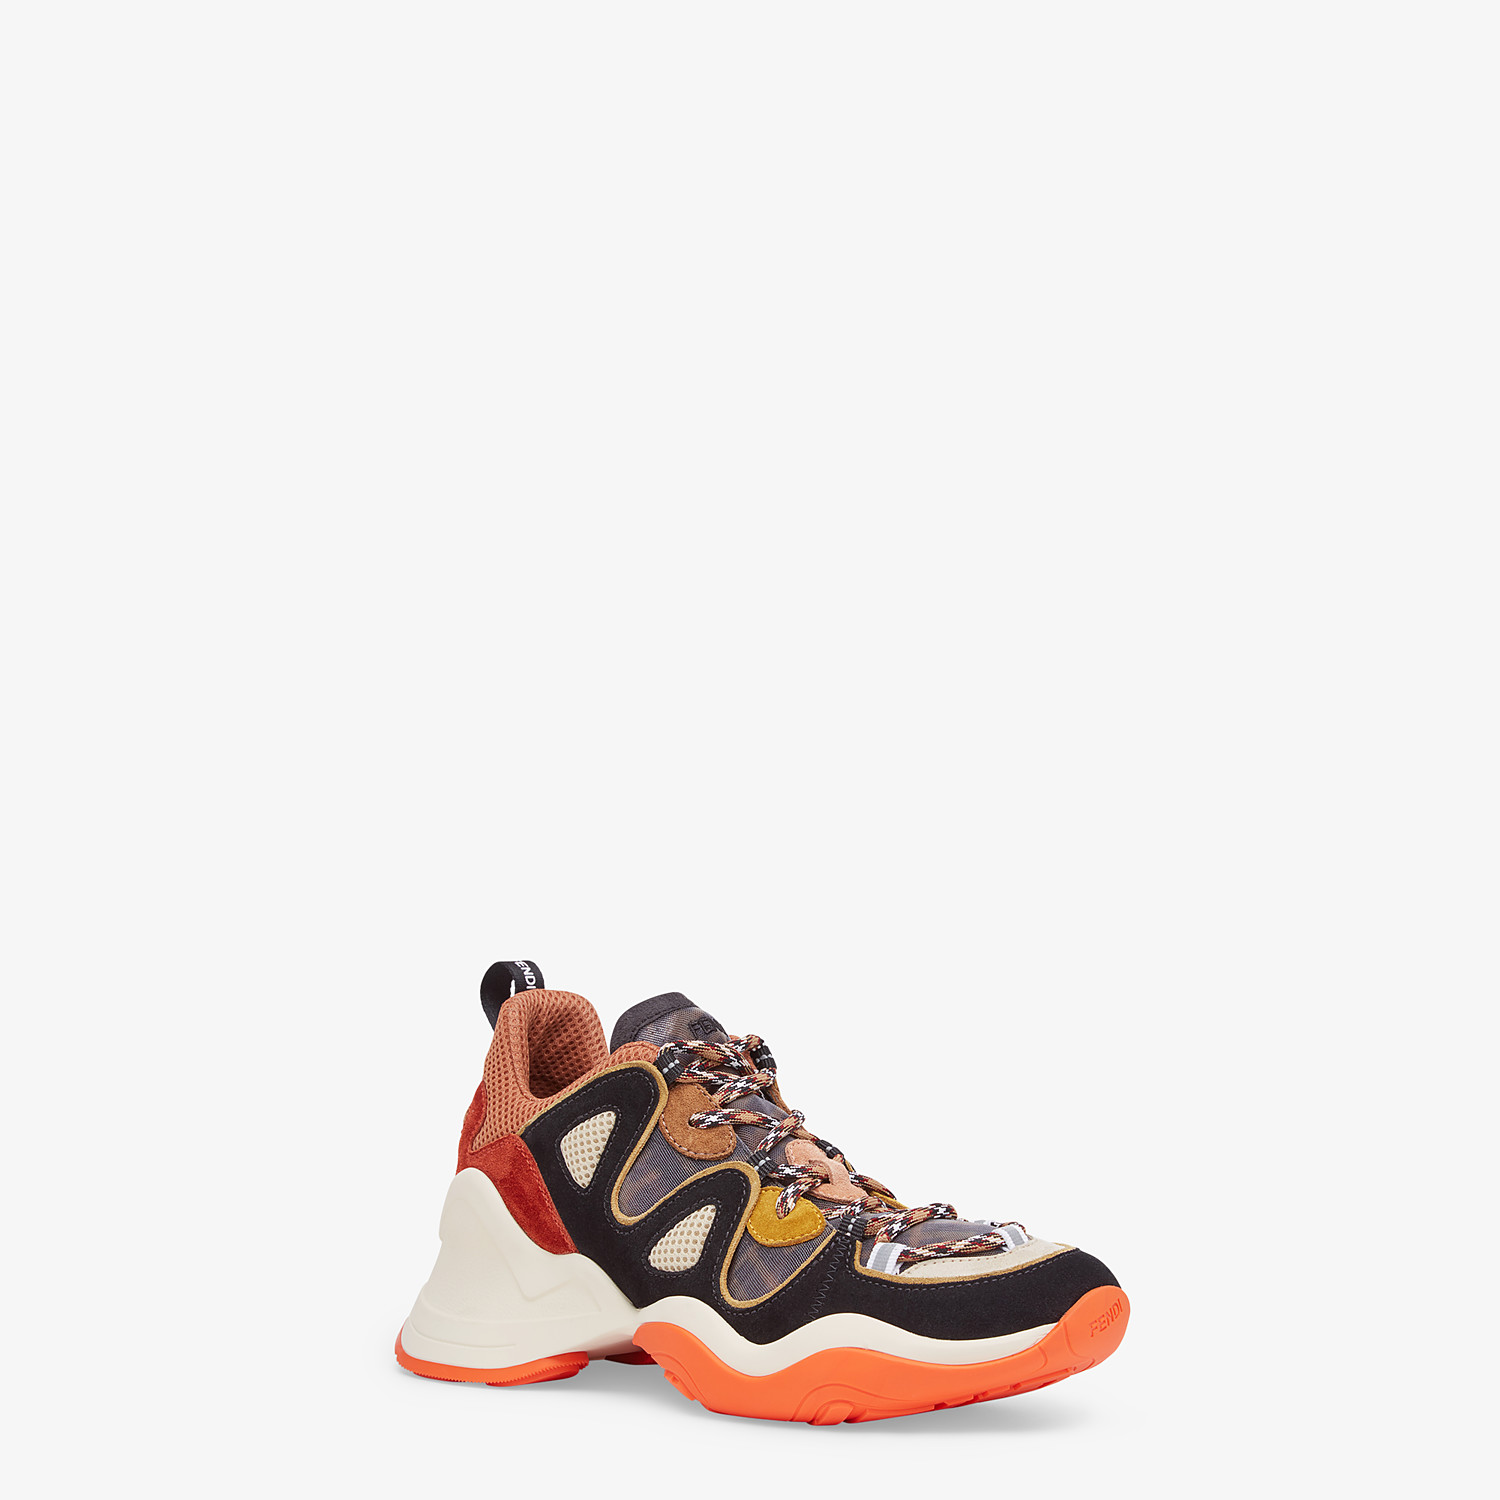 FENDI SNEAKERS - Multicolour suede and tech mesh sneakers - view 2 detail